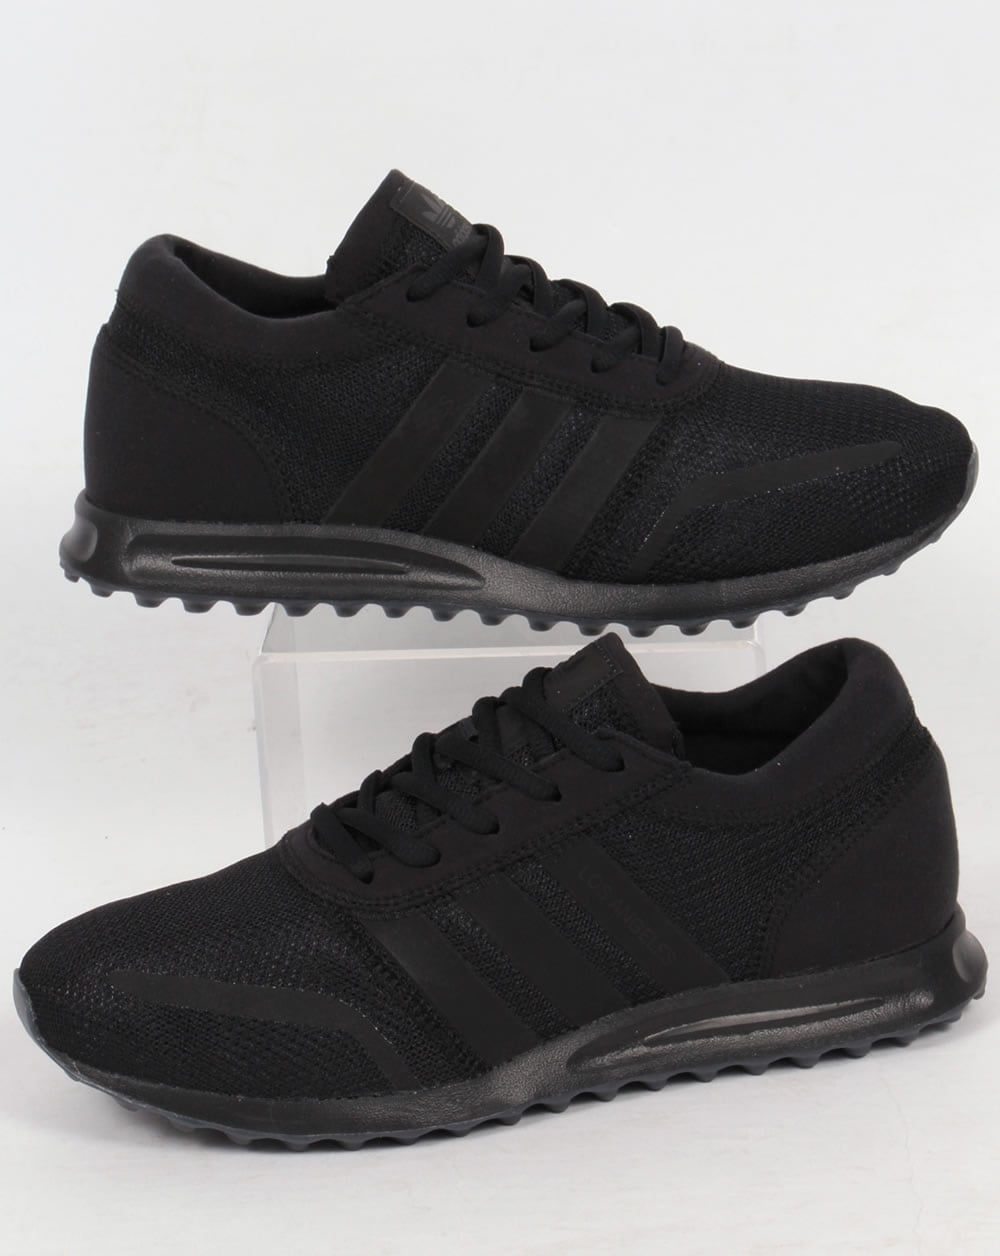 new arrival autumn shoes new images of Adidas Los Angeles Trainers Triple Black